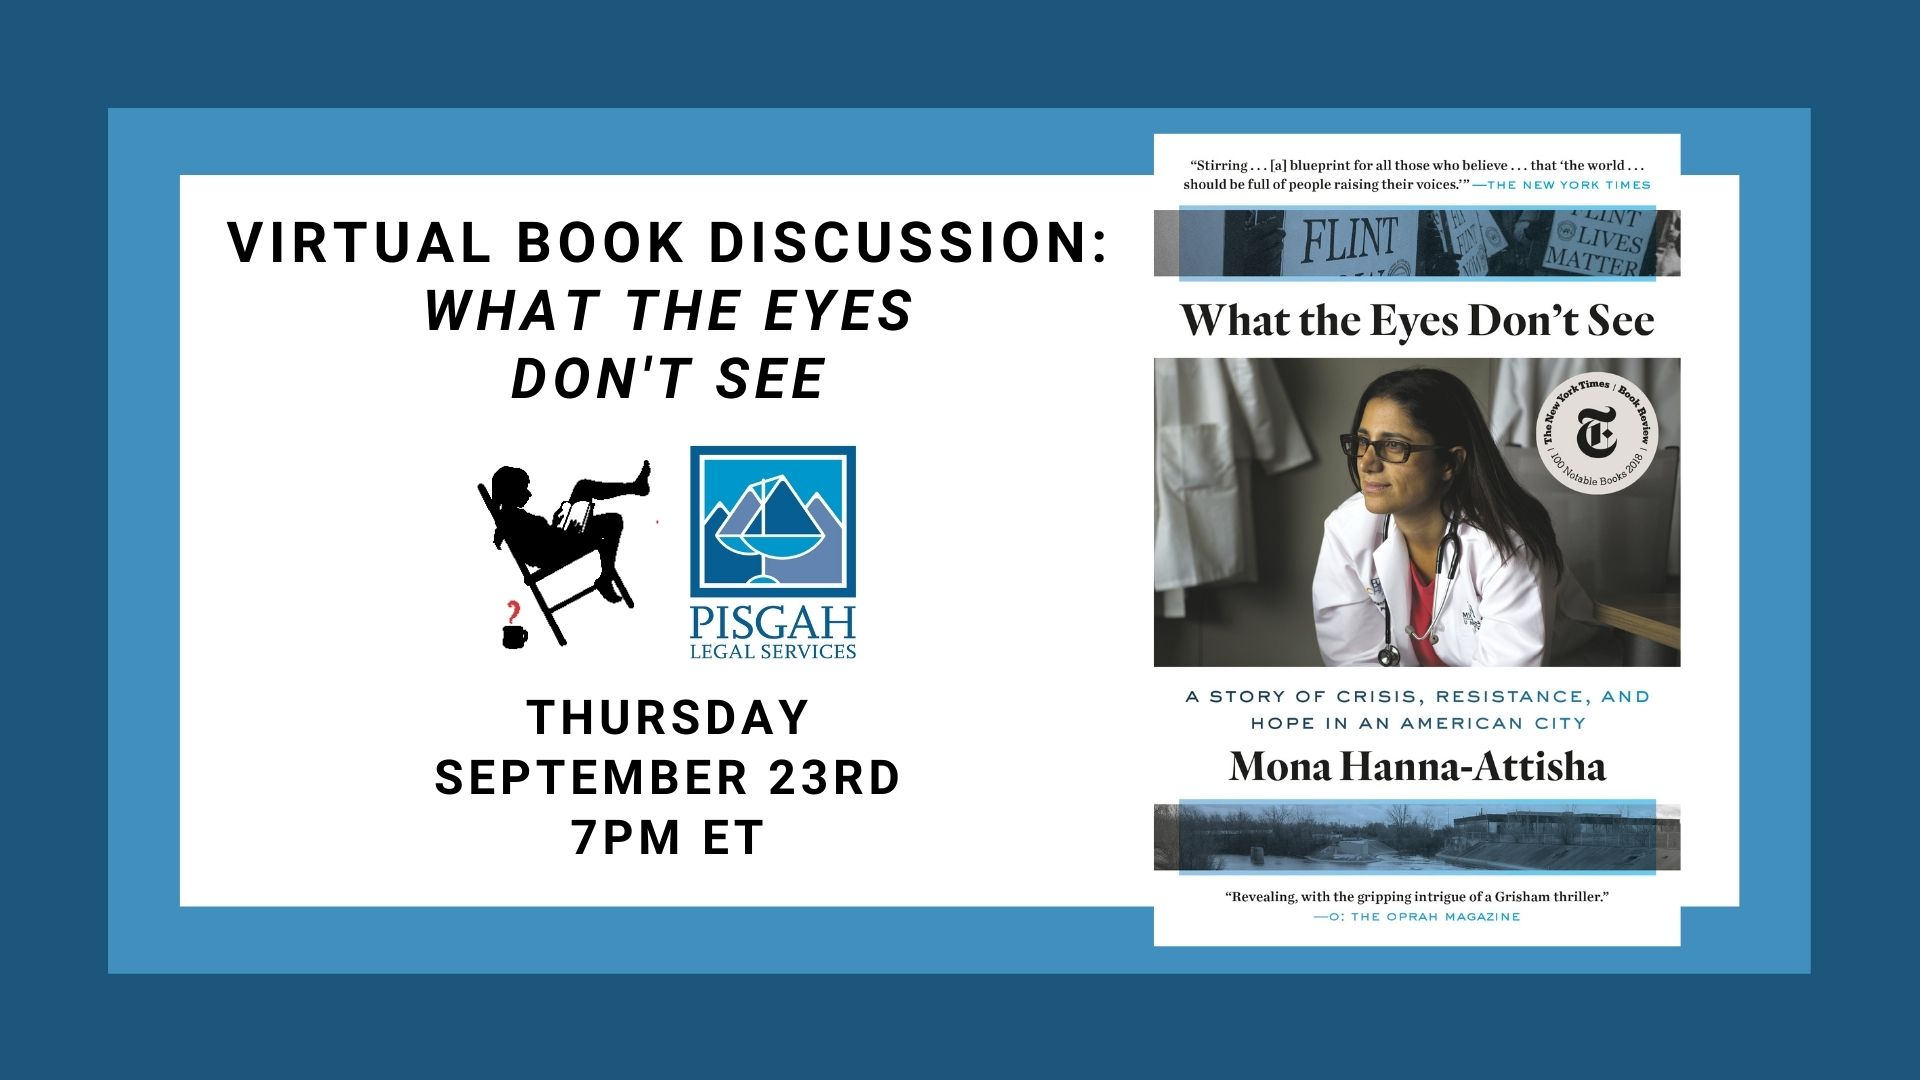 Image shows a blue border with a white box containing: Virtual Book Discussion: What the Eyes Don't See with logos for Malaprop's and Pisgah Legal Services, image of the book cover and event info: Thursday, September 23rd, 6 PM ET